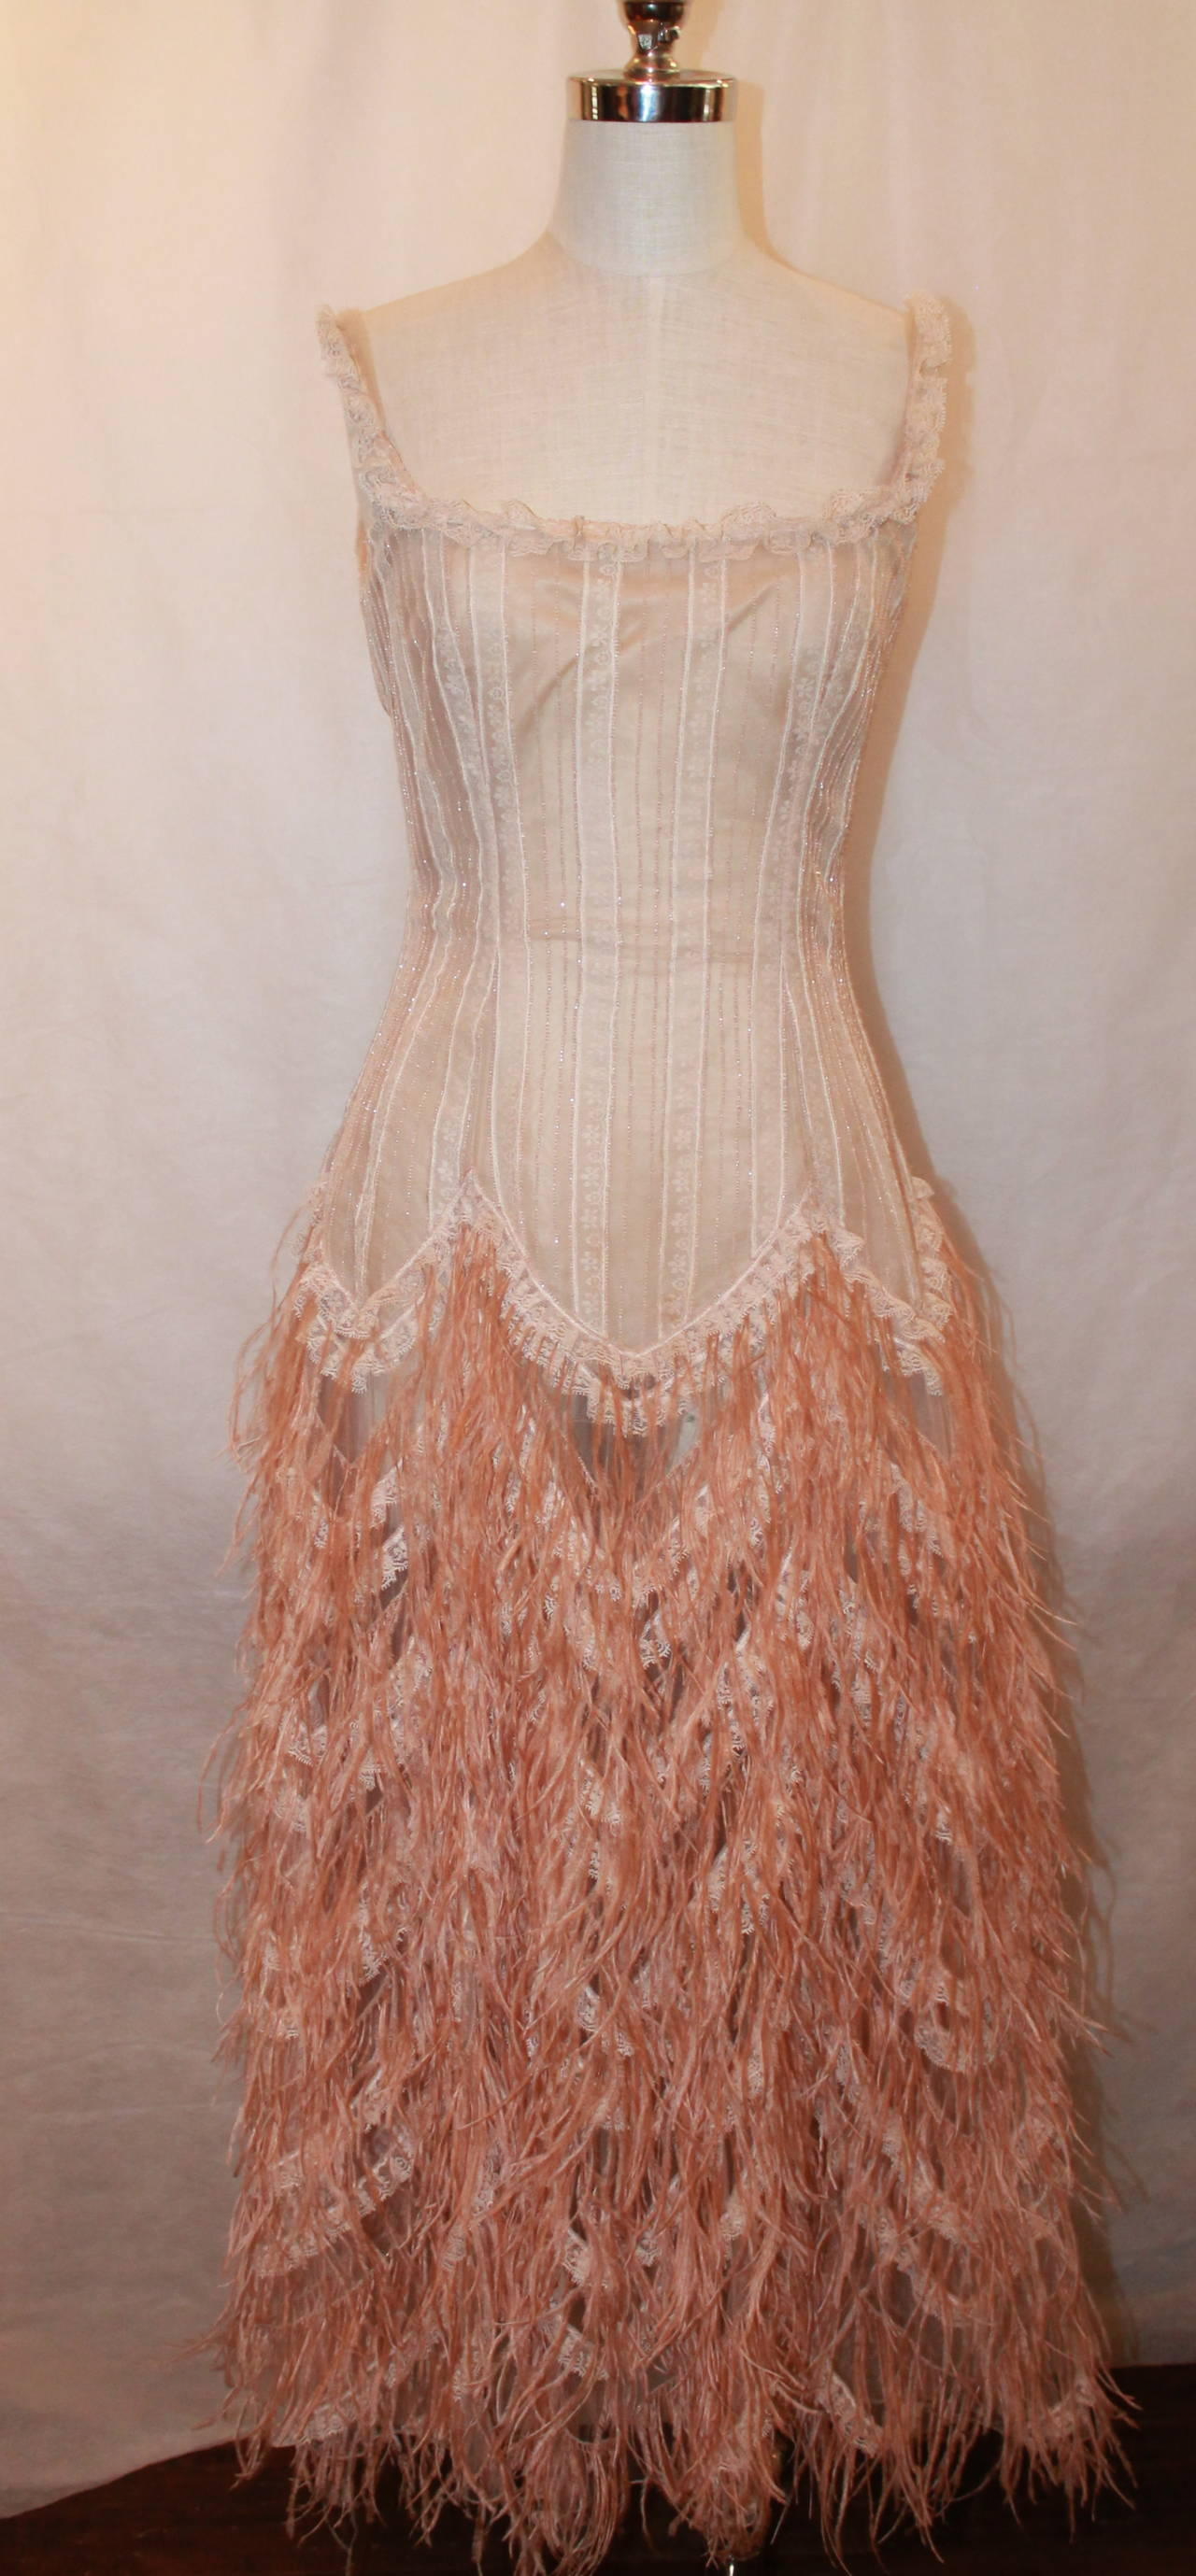 Brown Oscar de la Renta Blush Lace Beaded Gown with Ostrich Feathers & Shawl - M For Sale